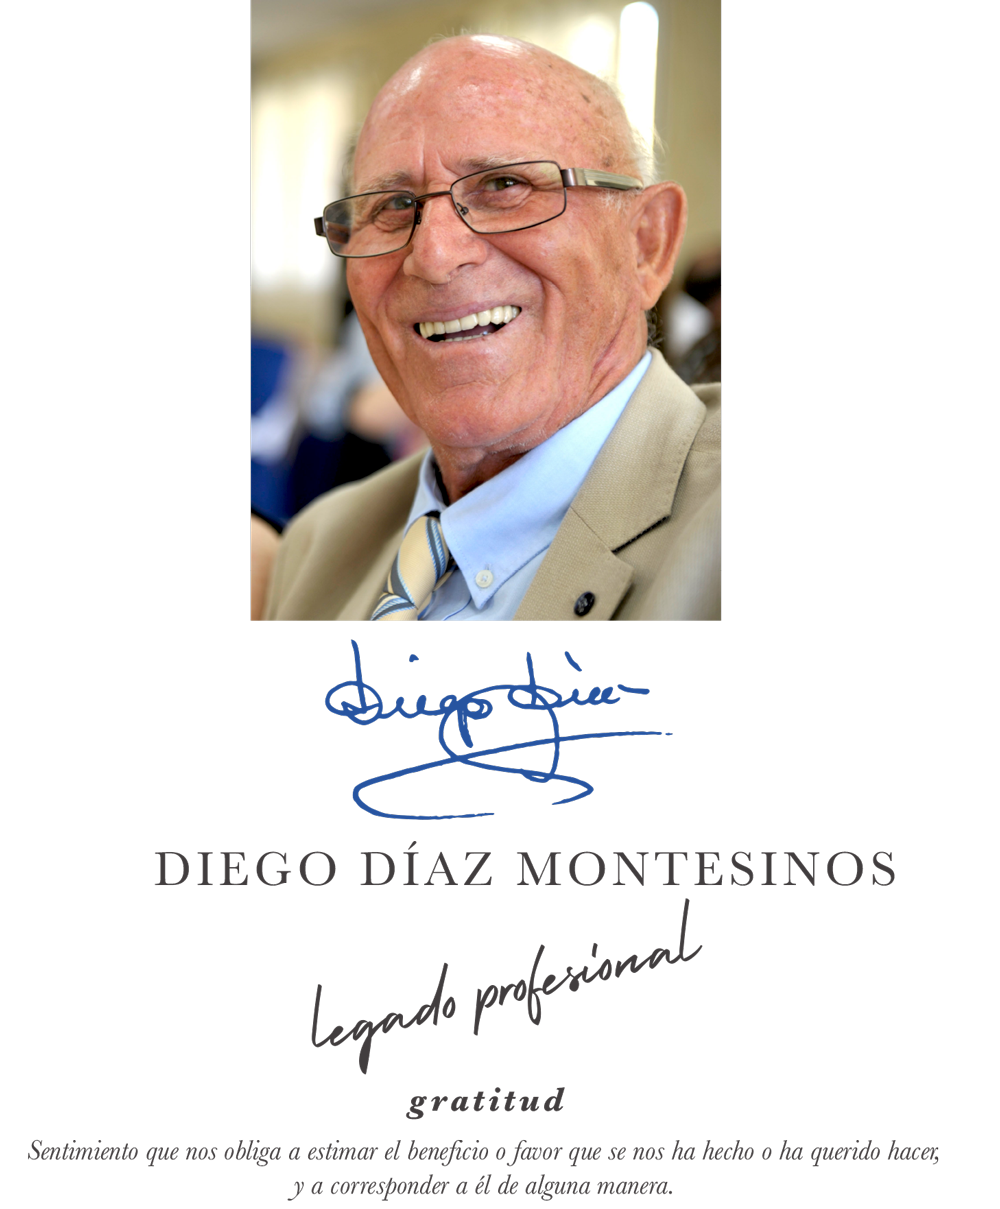 diego-diaz-montesinos